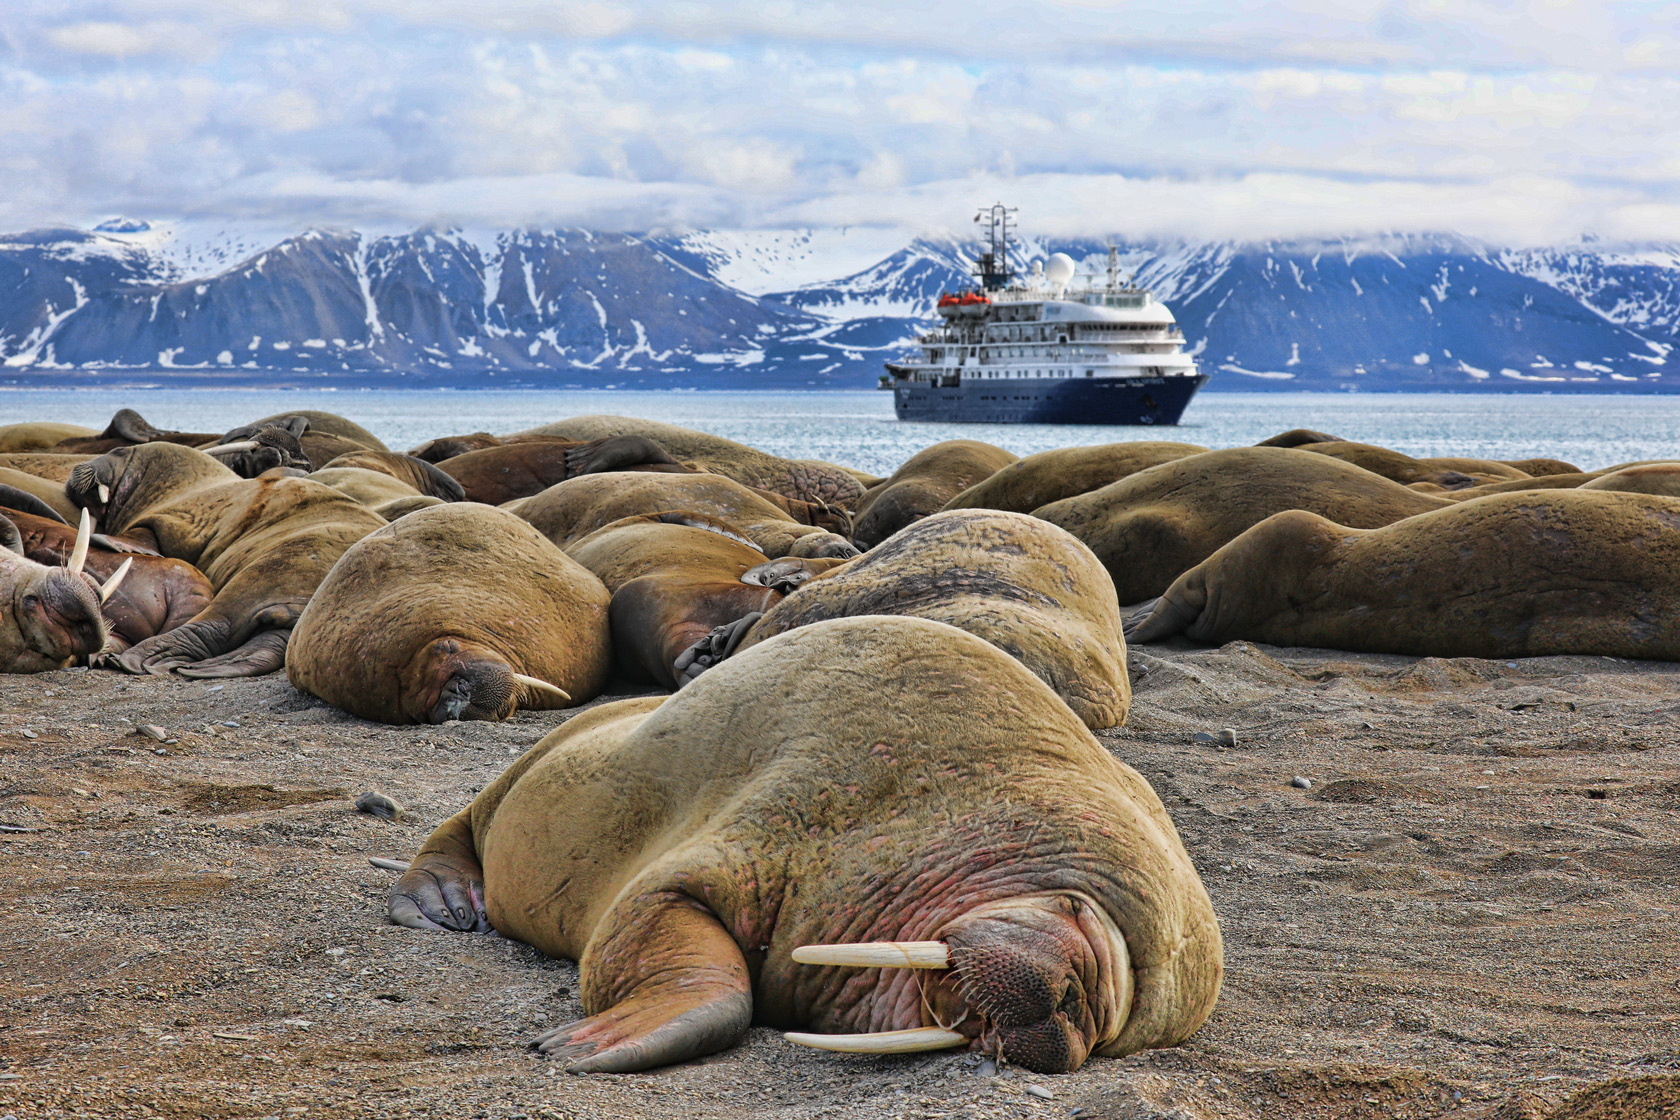 svalbard-poolepynten-walrus-with-ship.jpg